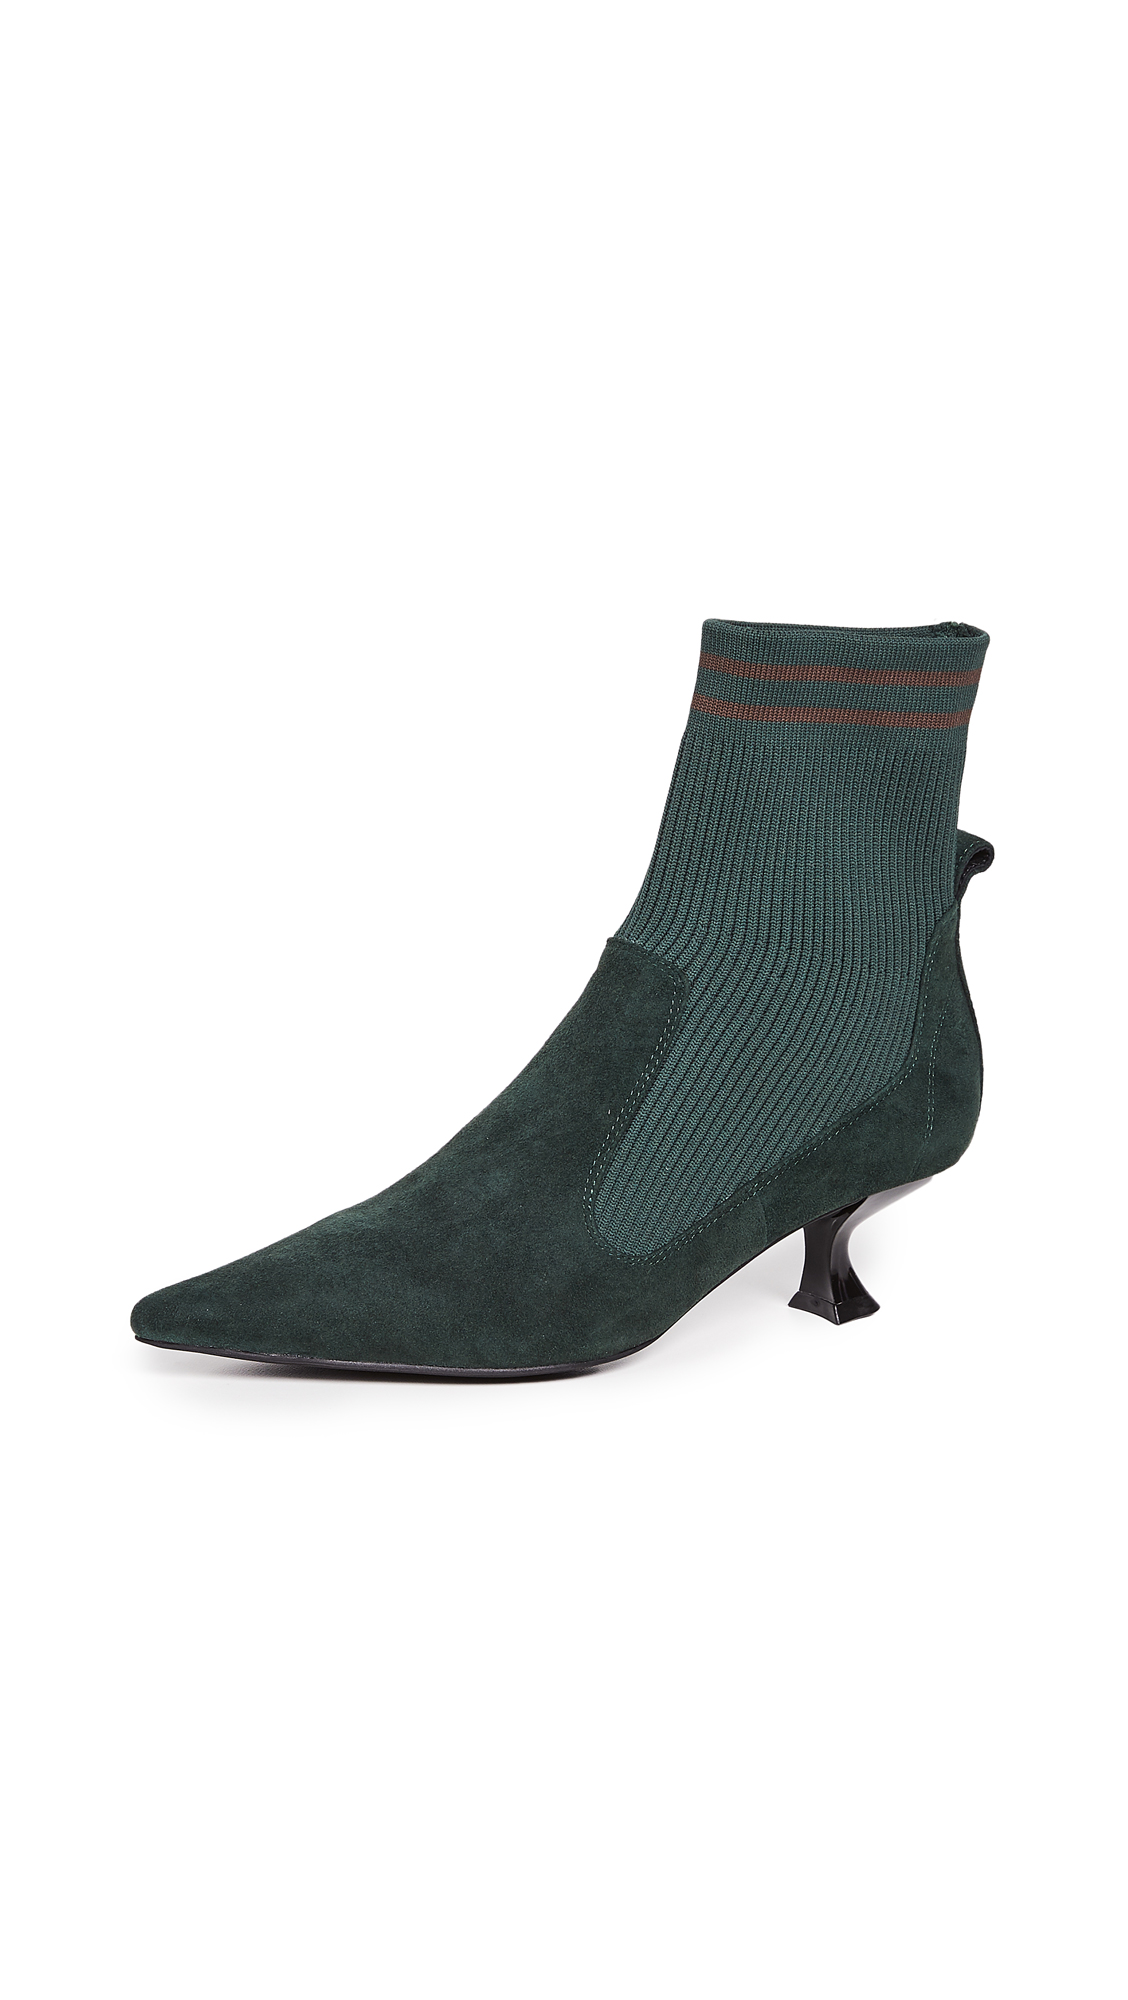 Jeffrey Campbell Morbid Sock Booties - Forest Green